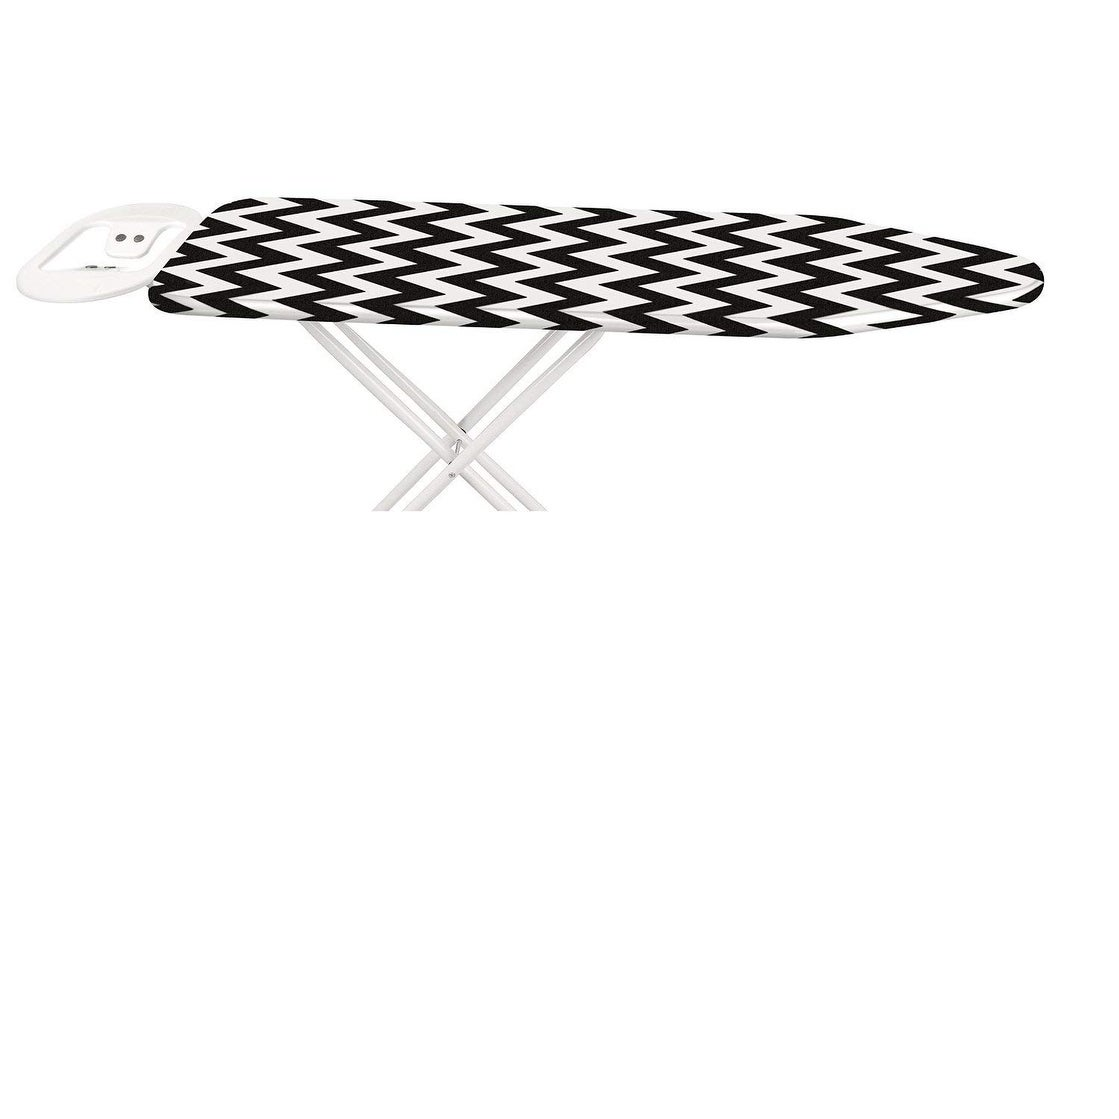 Ironing Board Cover Scorch Resistant Iron Board Cover With Padding